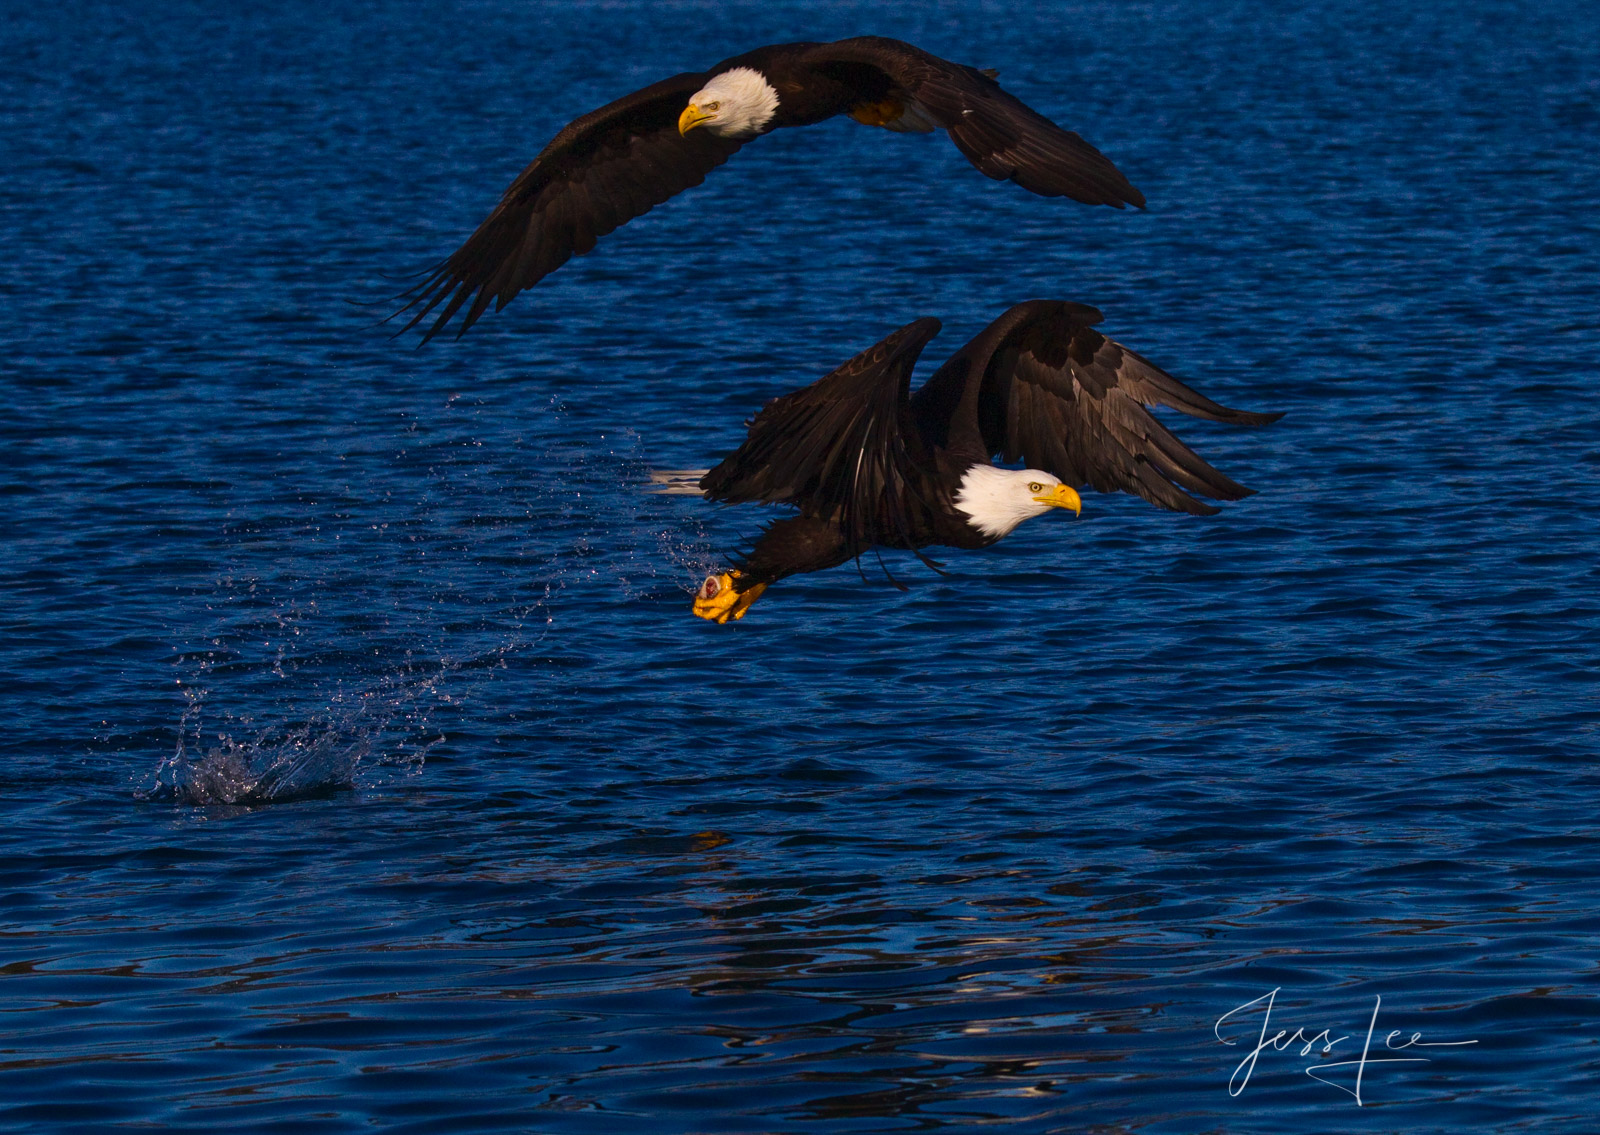 Bring home the power and beauty of the amazing fine art American Bald Eagle photograph Mine by Jess Lee from his Wildlife Photography...